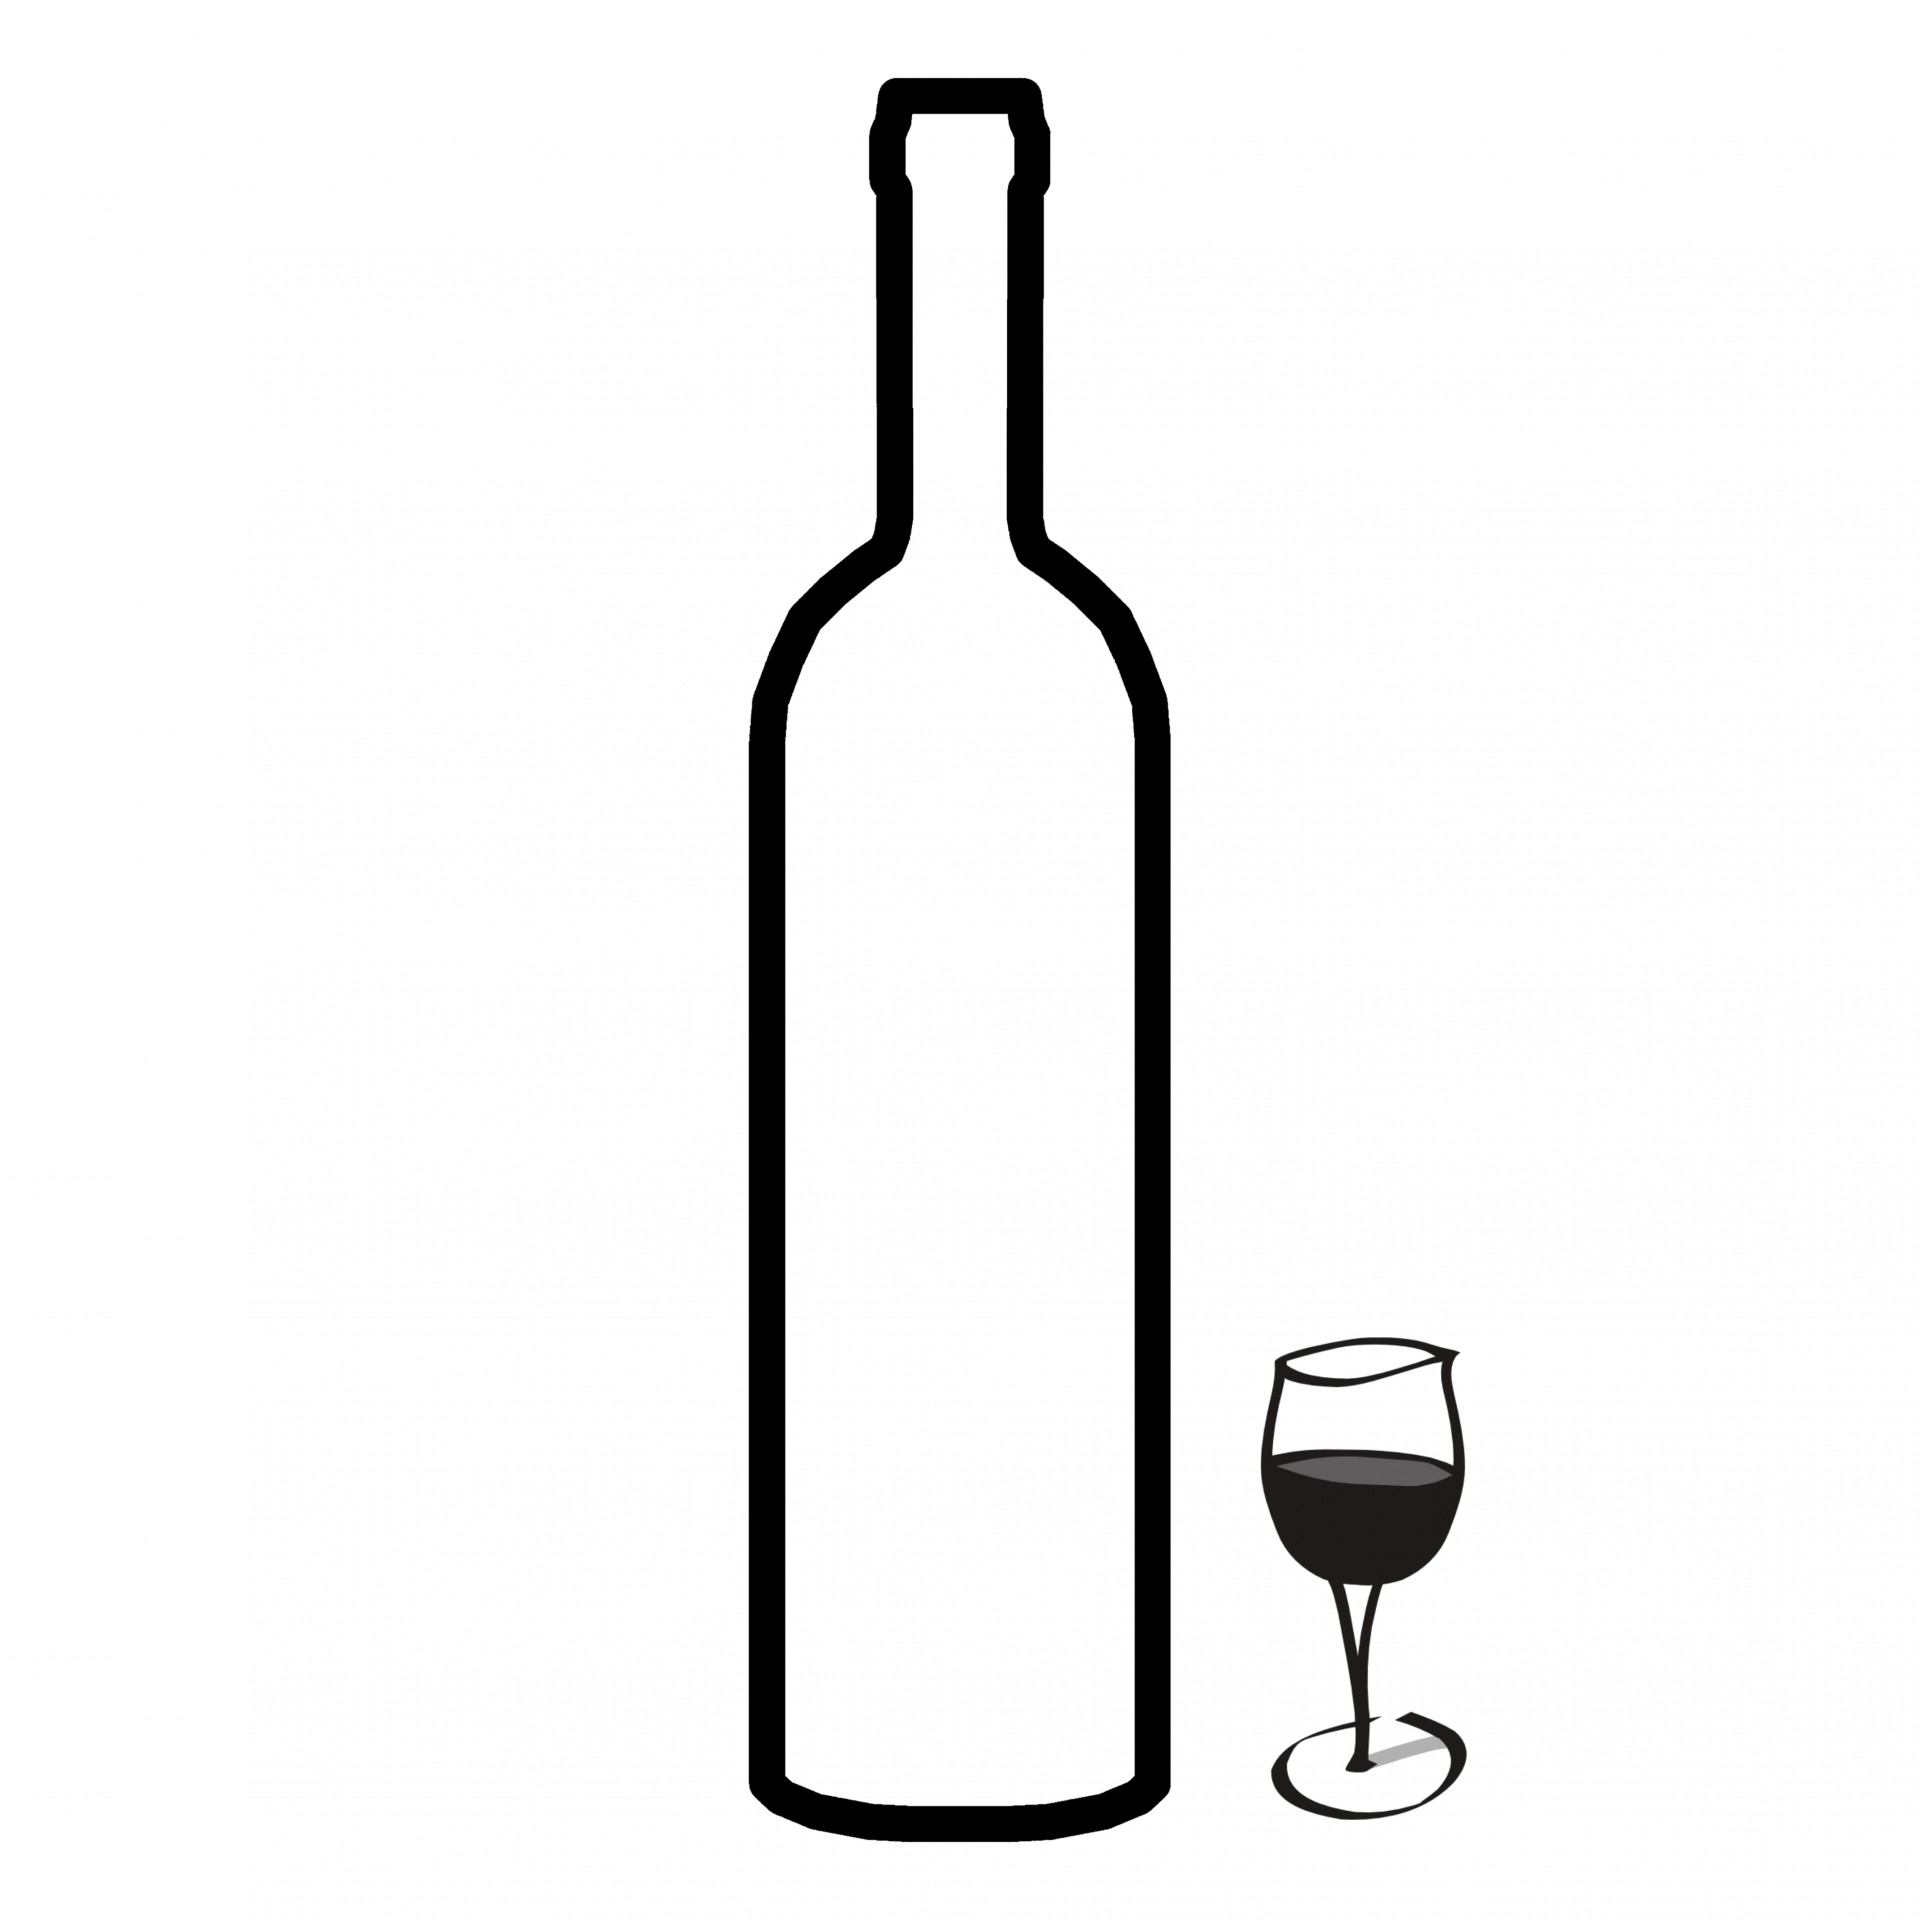 1920x1920 Bottle And Glass Silhouette Free Stock Photo